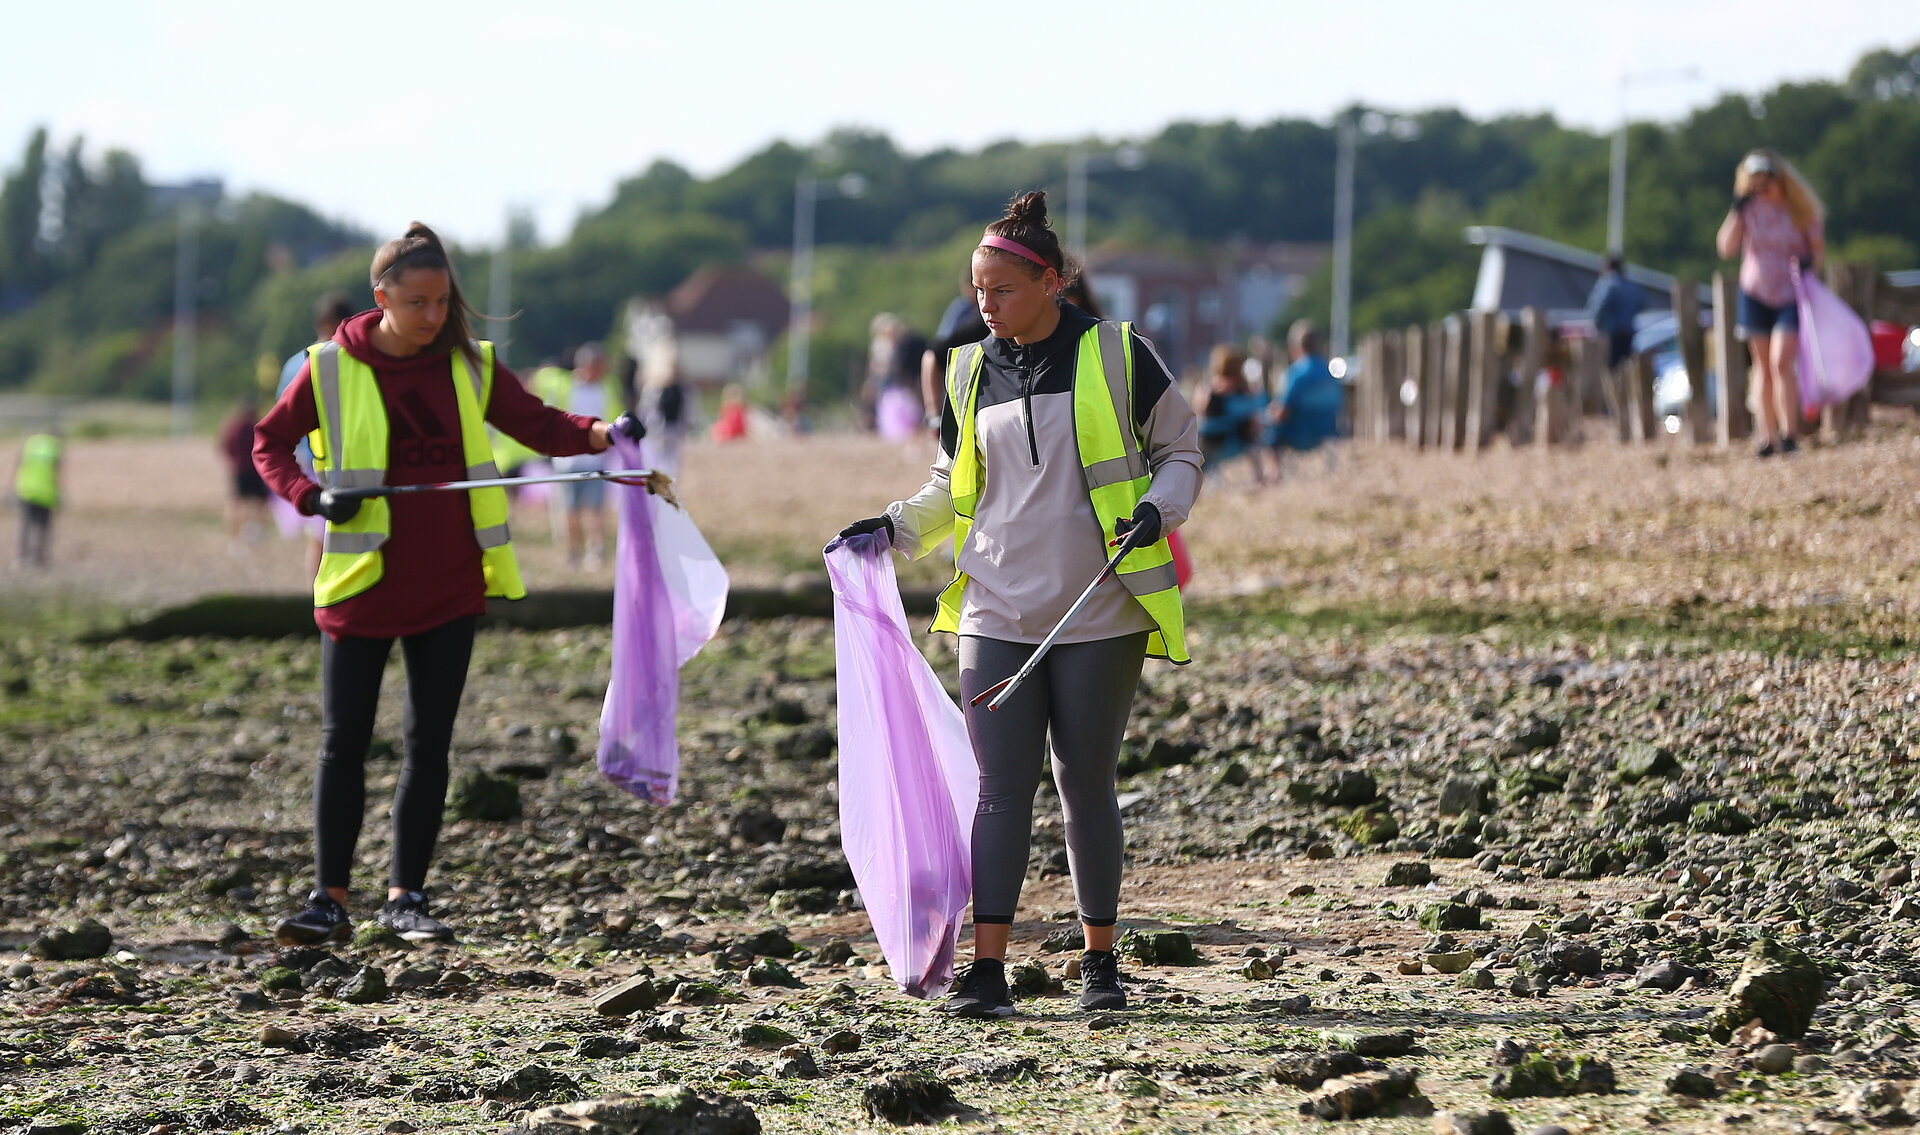 SOUTHAMPTON, ENGLAND - JUNE 17: Southampton FC staff participate in a beach clean at Weston Shore, on June 17, 2020 in Southampton, England. (Photo by Matt Watson/Southampton FC via Getty Images)